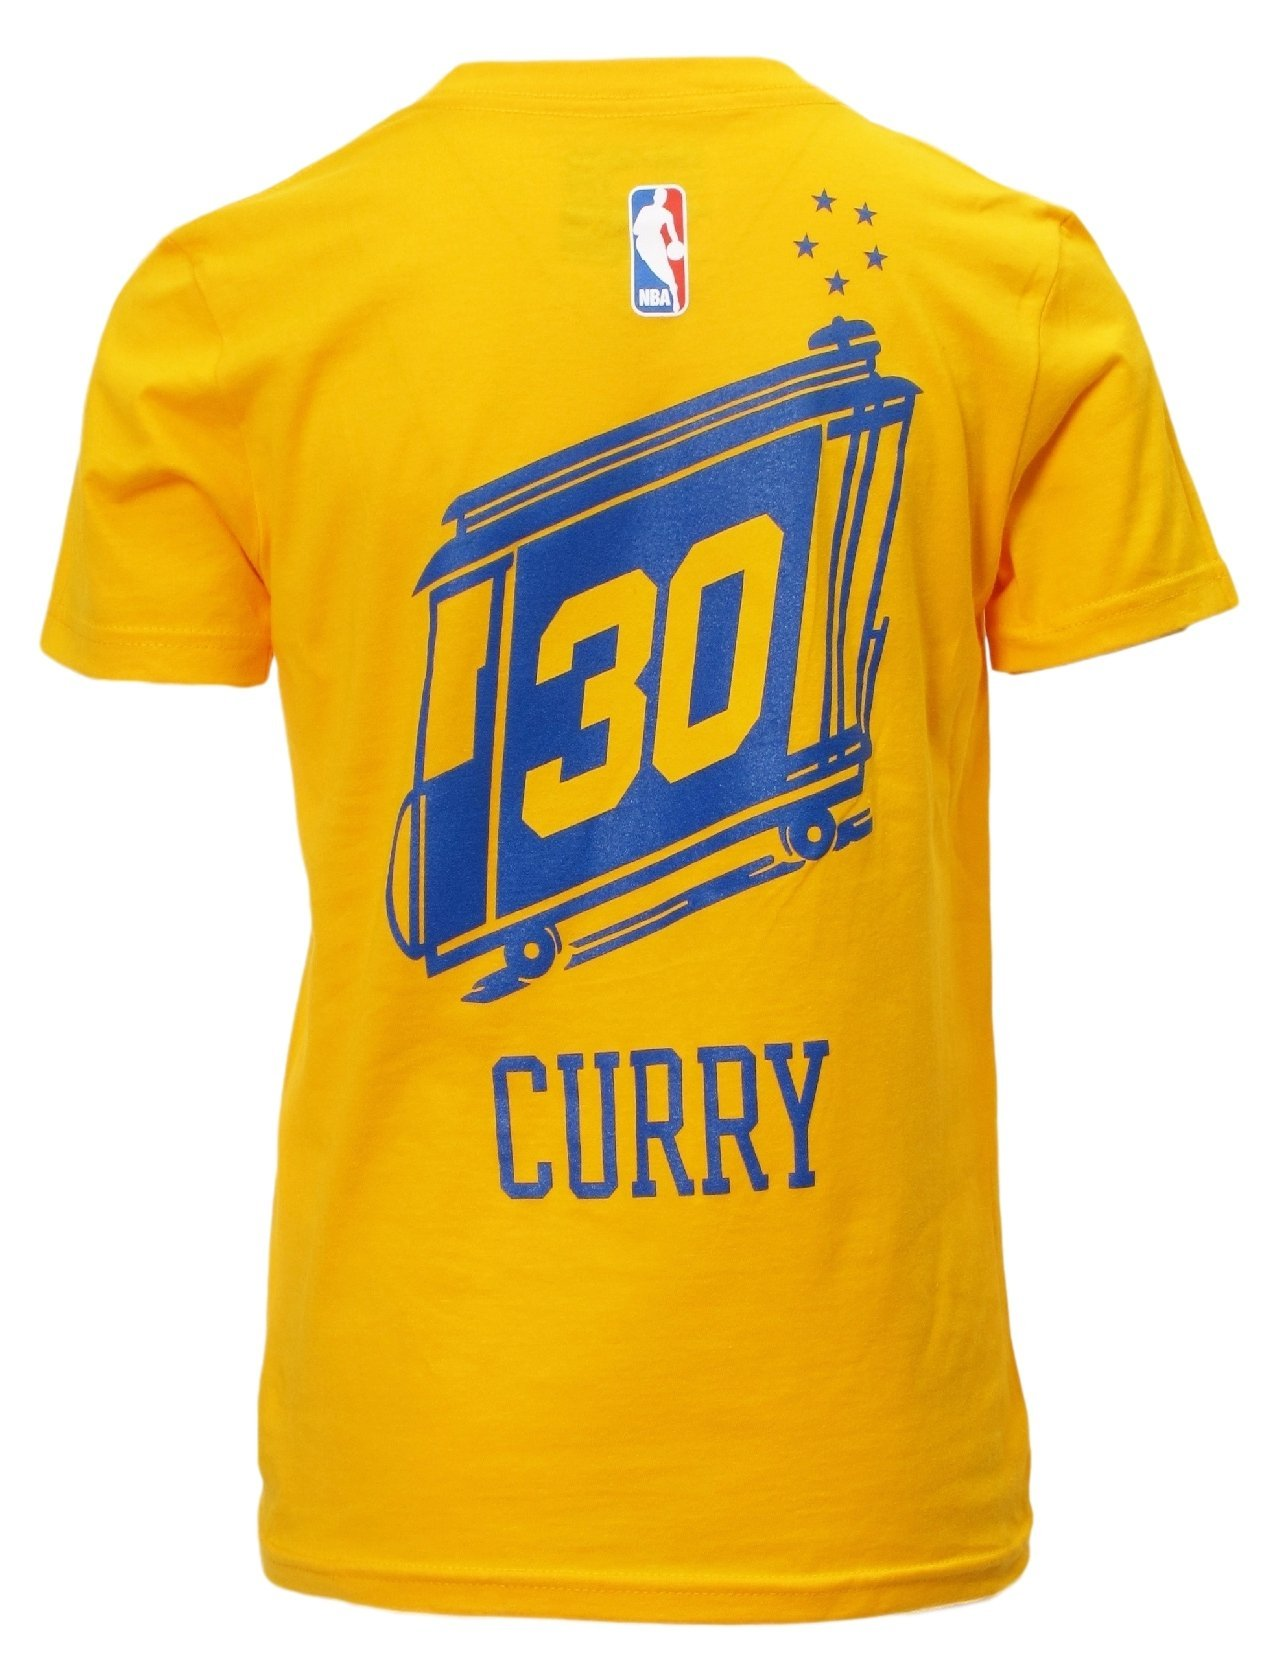 45d037806fb Galleon - Golden State Warriors Stephen Curry Adidas Youth Gold The City  Shirt Boys 8-20 (Youth Large 14-16)